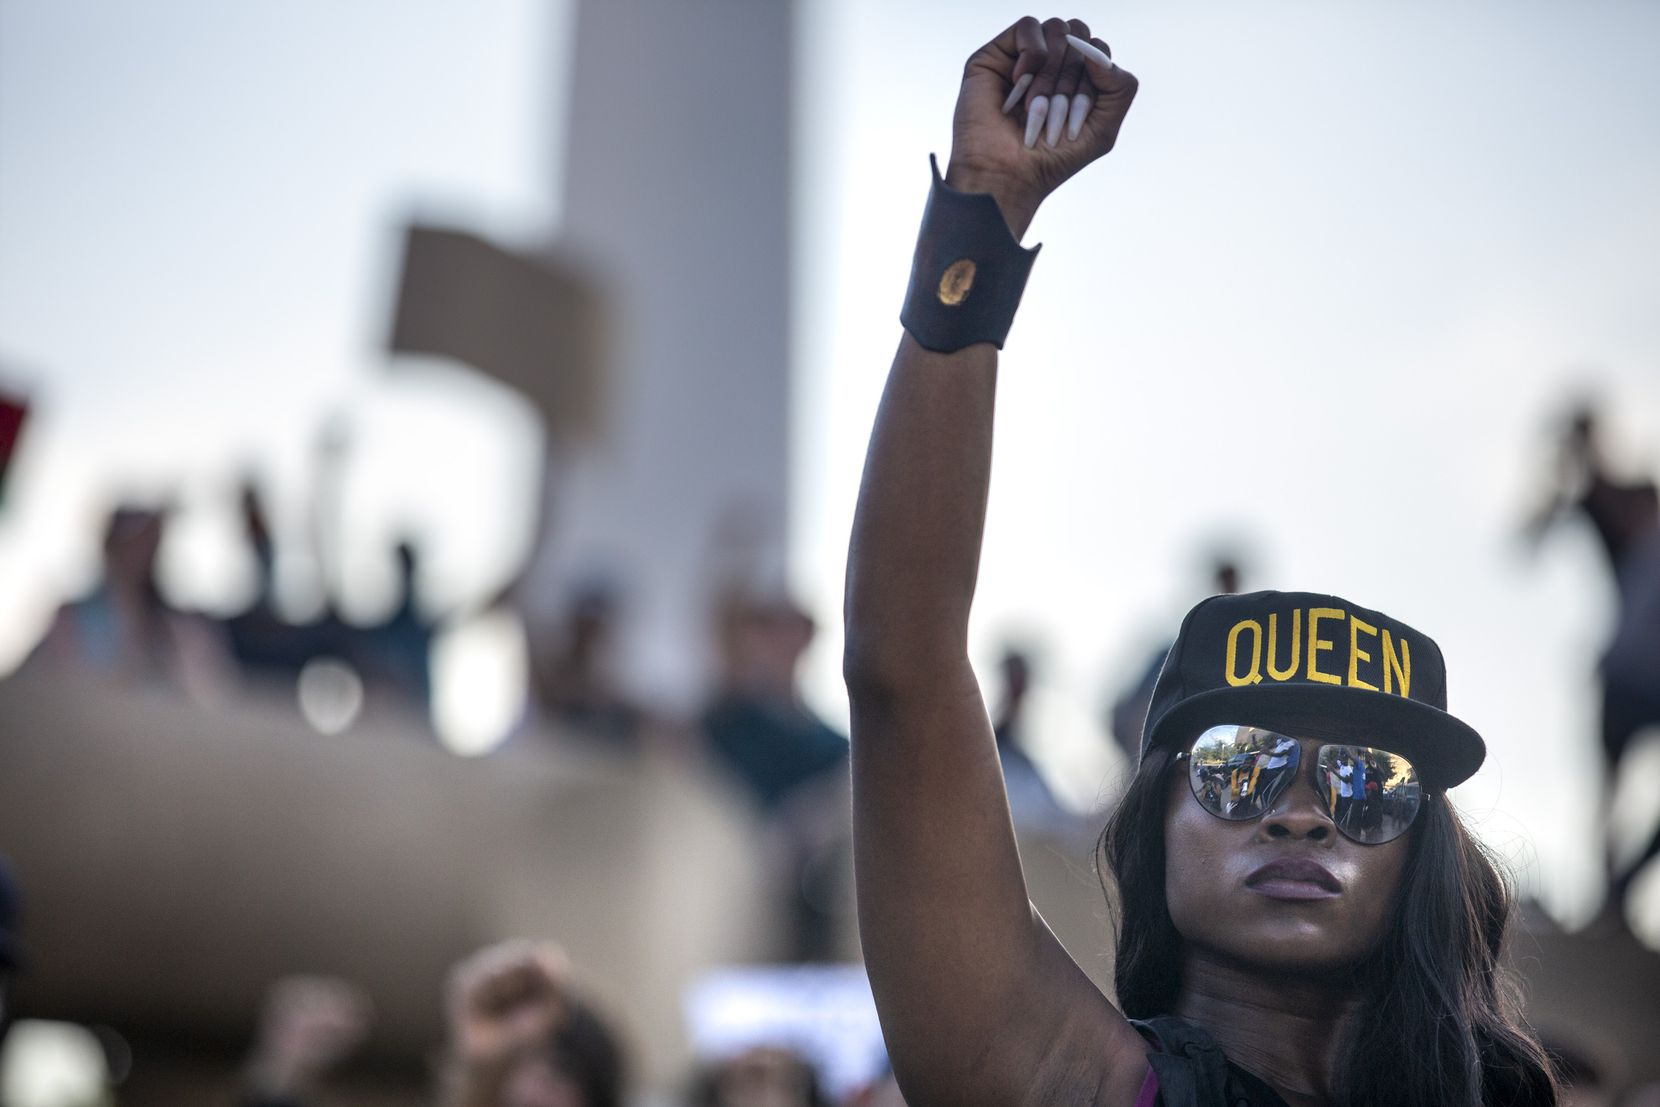 Jennifer Akabue raises her fist with other protesters as they participate in an 8-minute and 46-second kneel in honor of George Floyd during a demonstration at Dallas City Hall to denounce police brutality and systemic racism in Dallas on Thursday, June 4, 2020. The demonstration took place on the seventh consecutive day of organized protests in response to the recent deaths of George Floyd in Minneapolis and Breonna Taylor in Louisville.